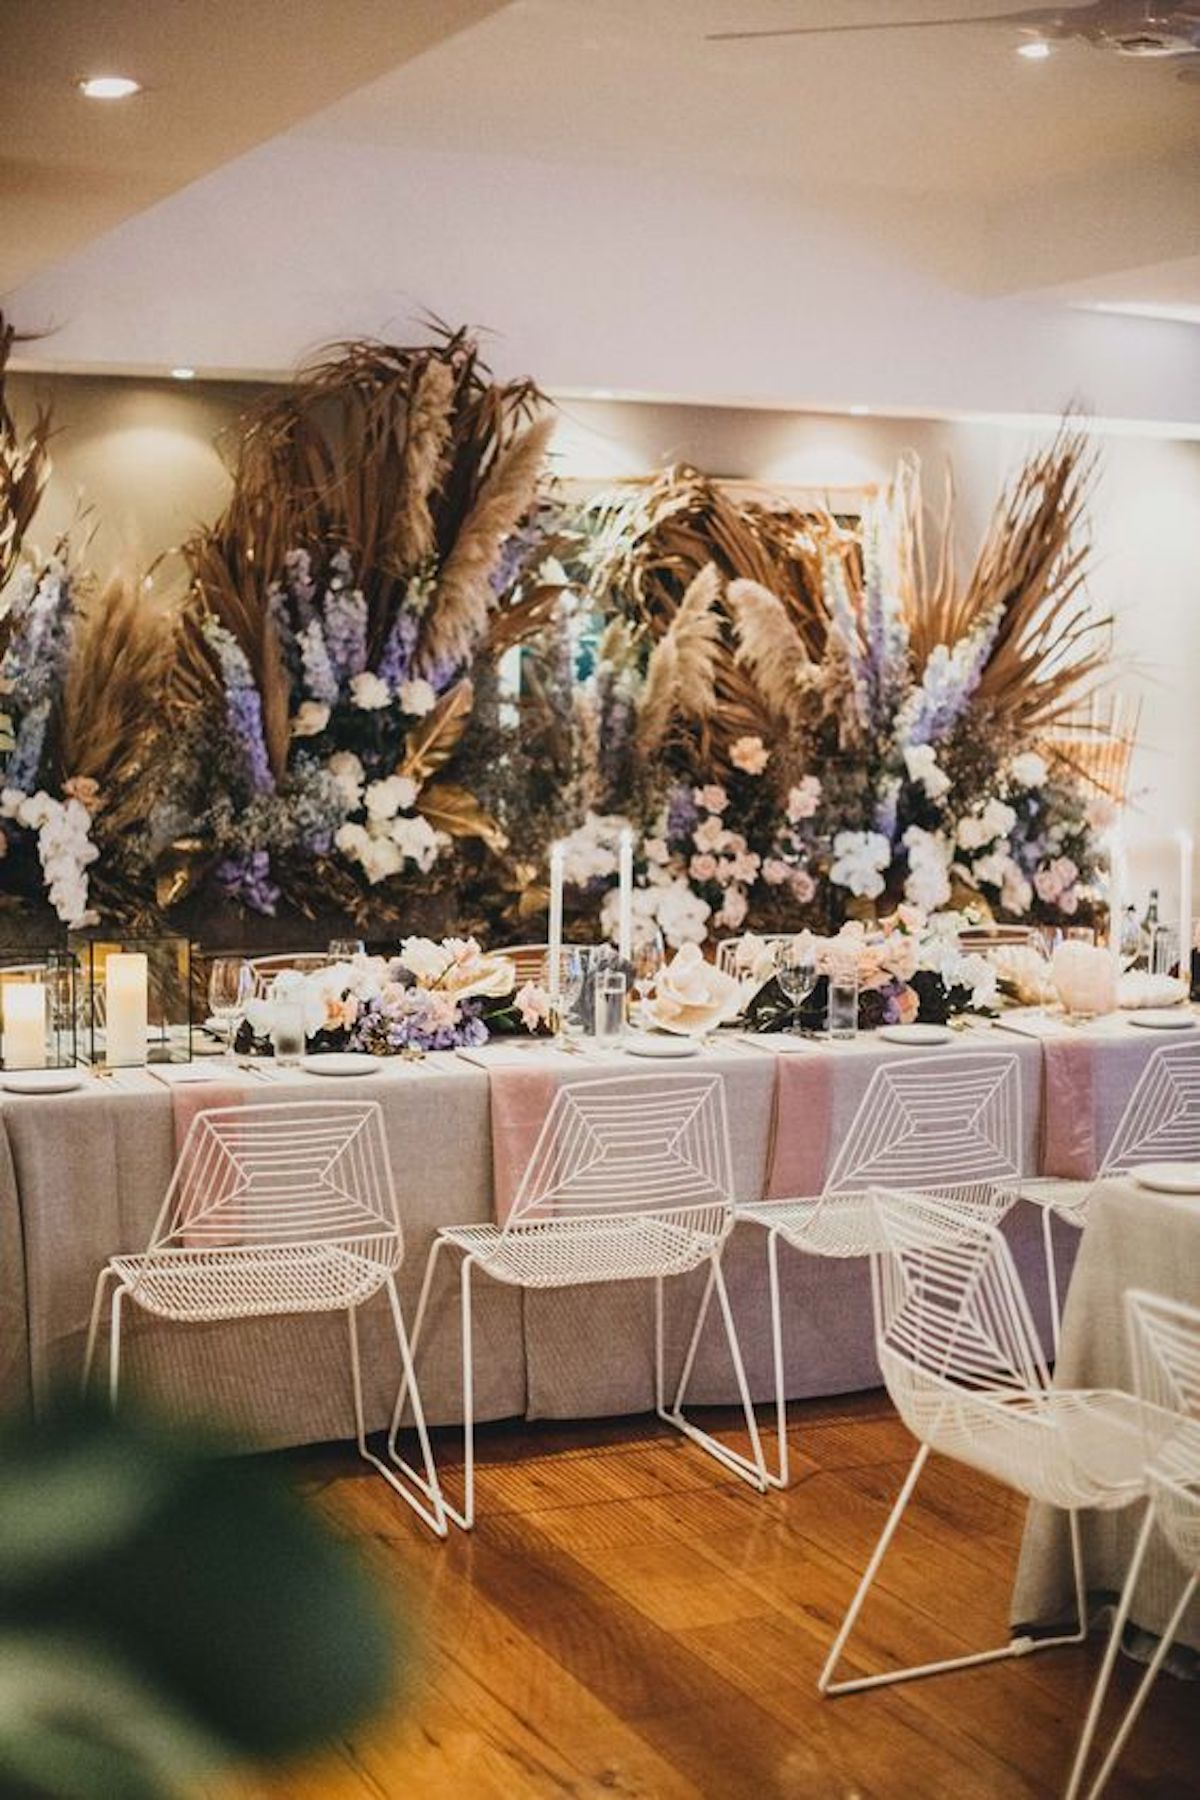 Byron Bay Wedding Styling Inspiration Autumnal Tones15.jpg